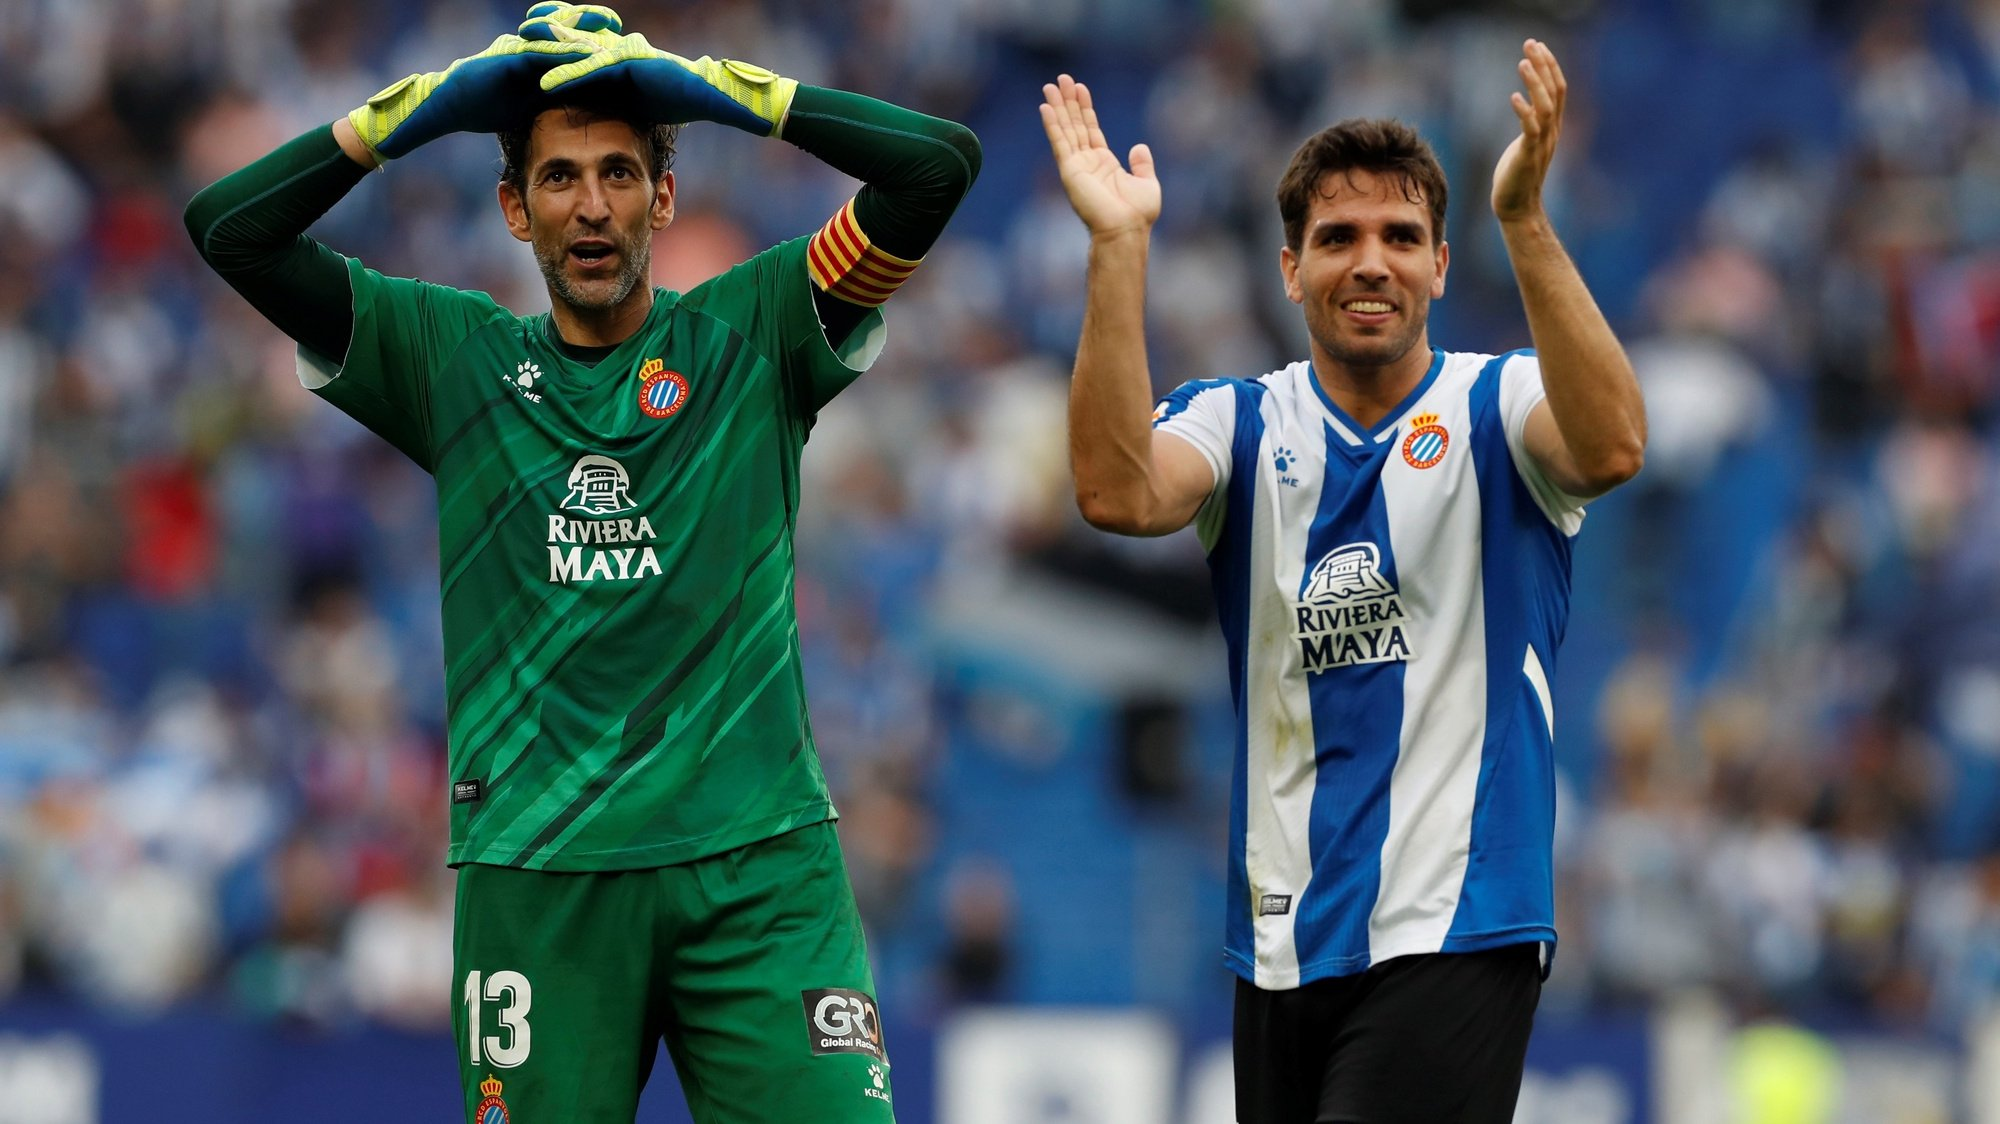 epa09503891 Espanyol's players celebrate after defeating Real Madrid in their Spanish LaLiga soccer match at RCD Stadium in Barcelona, Catalonia, Spain, 03 October 2021.  EPA/Alberto Estevez